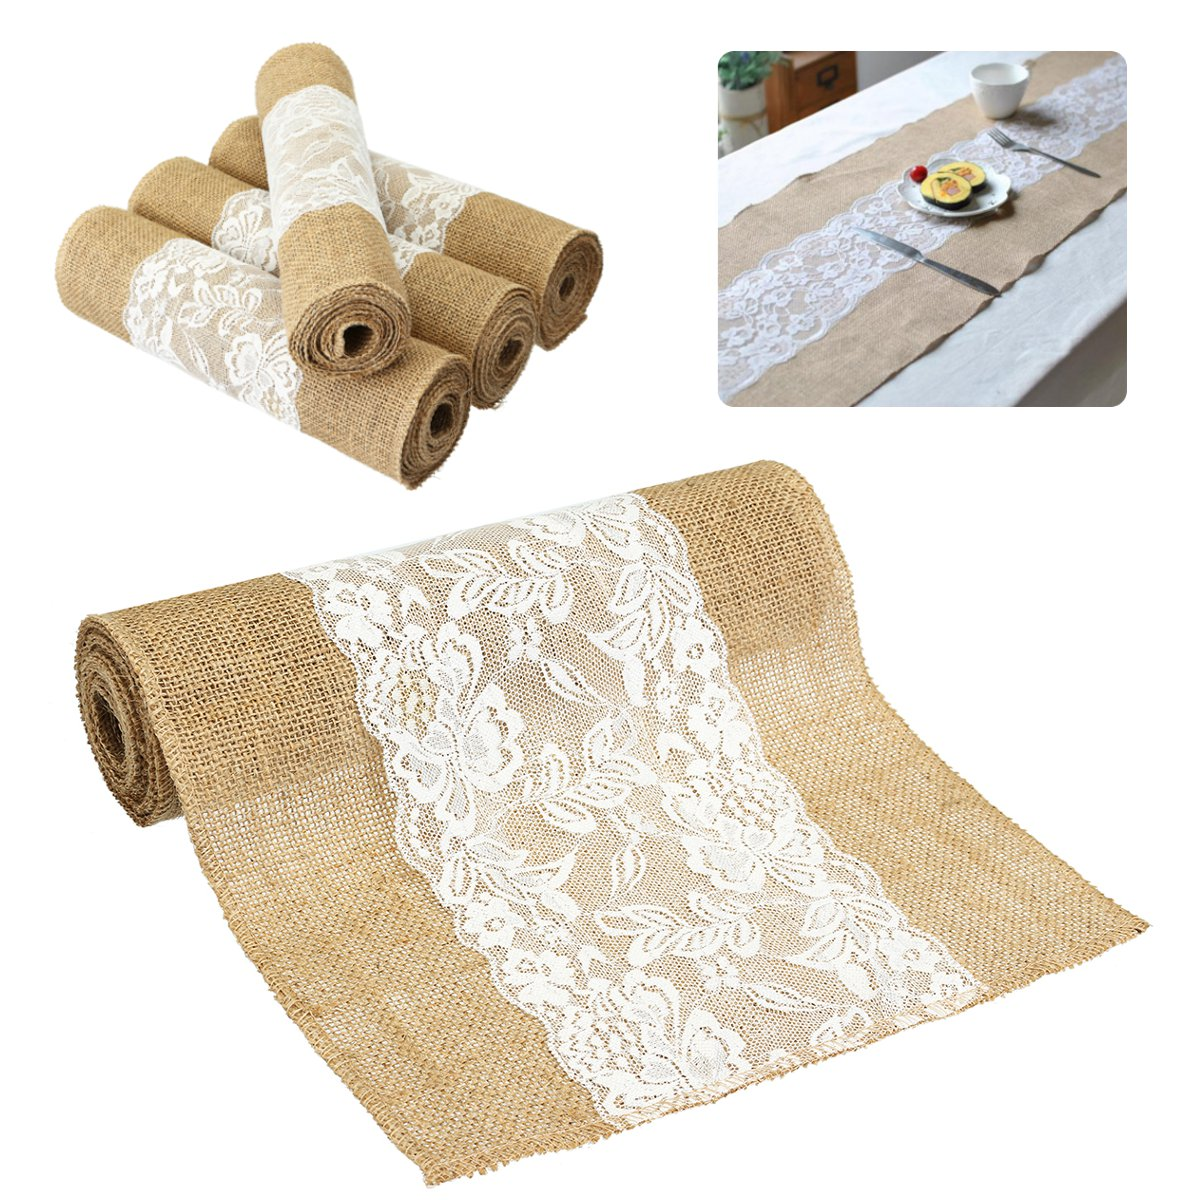 4 Size Vintage Natural Burlap Jute Lace Table Runner Fabric Wedding Party  Decor